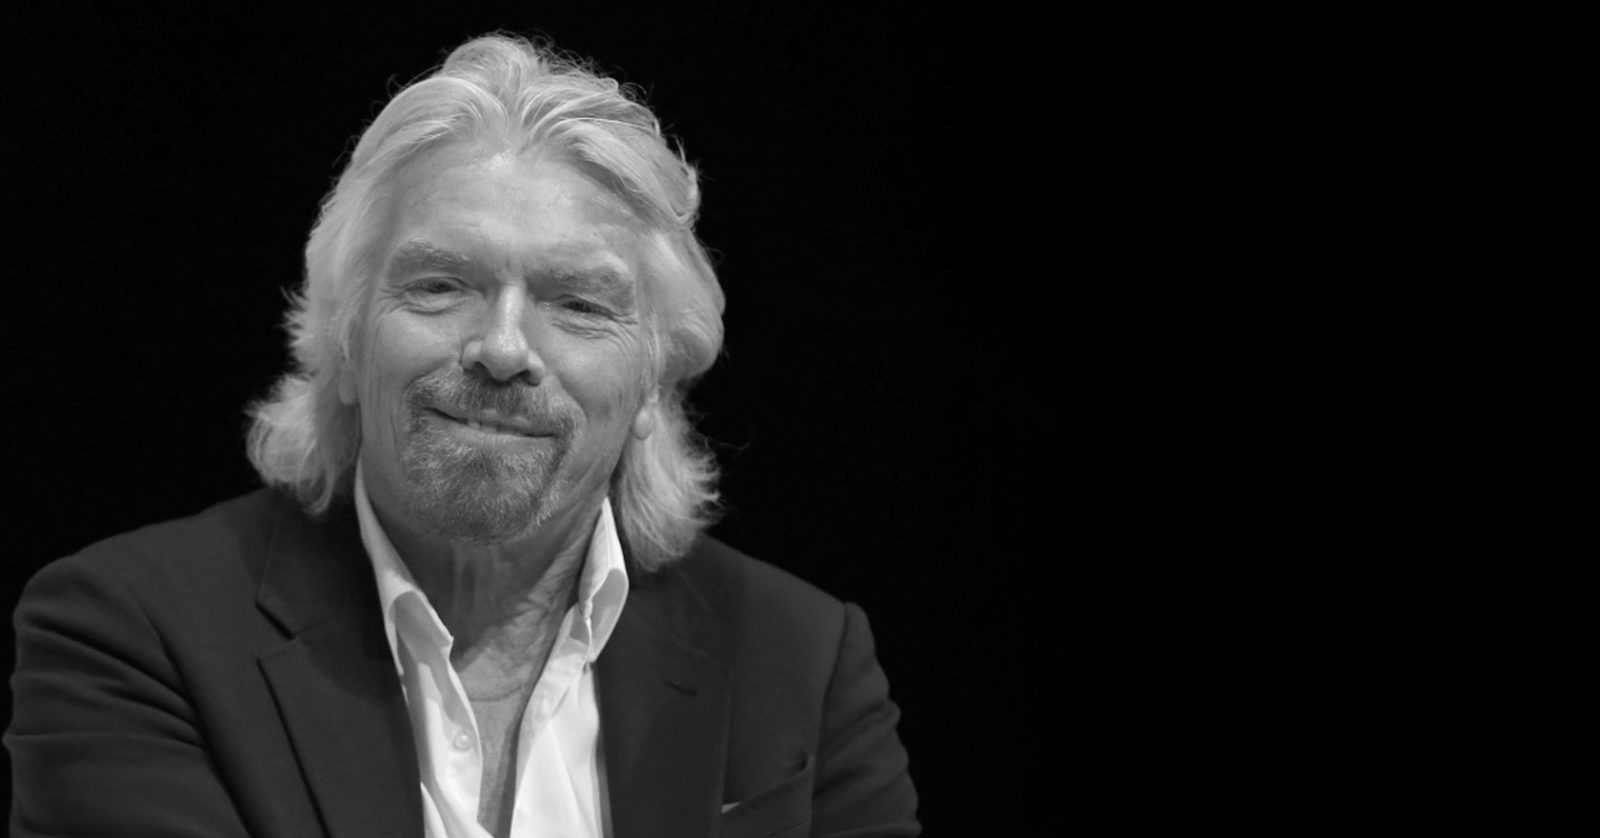 SIR RICHARD BRANSON Founder of Virgin Group